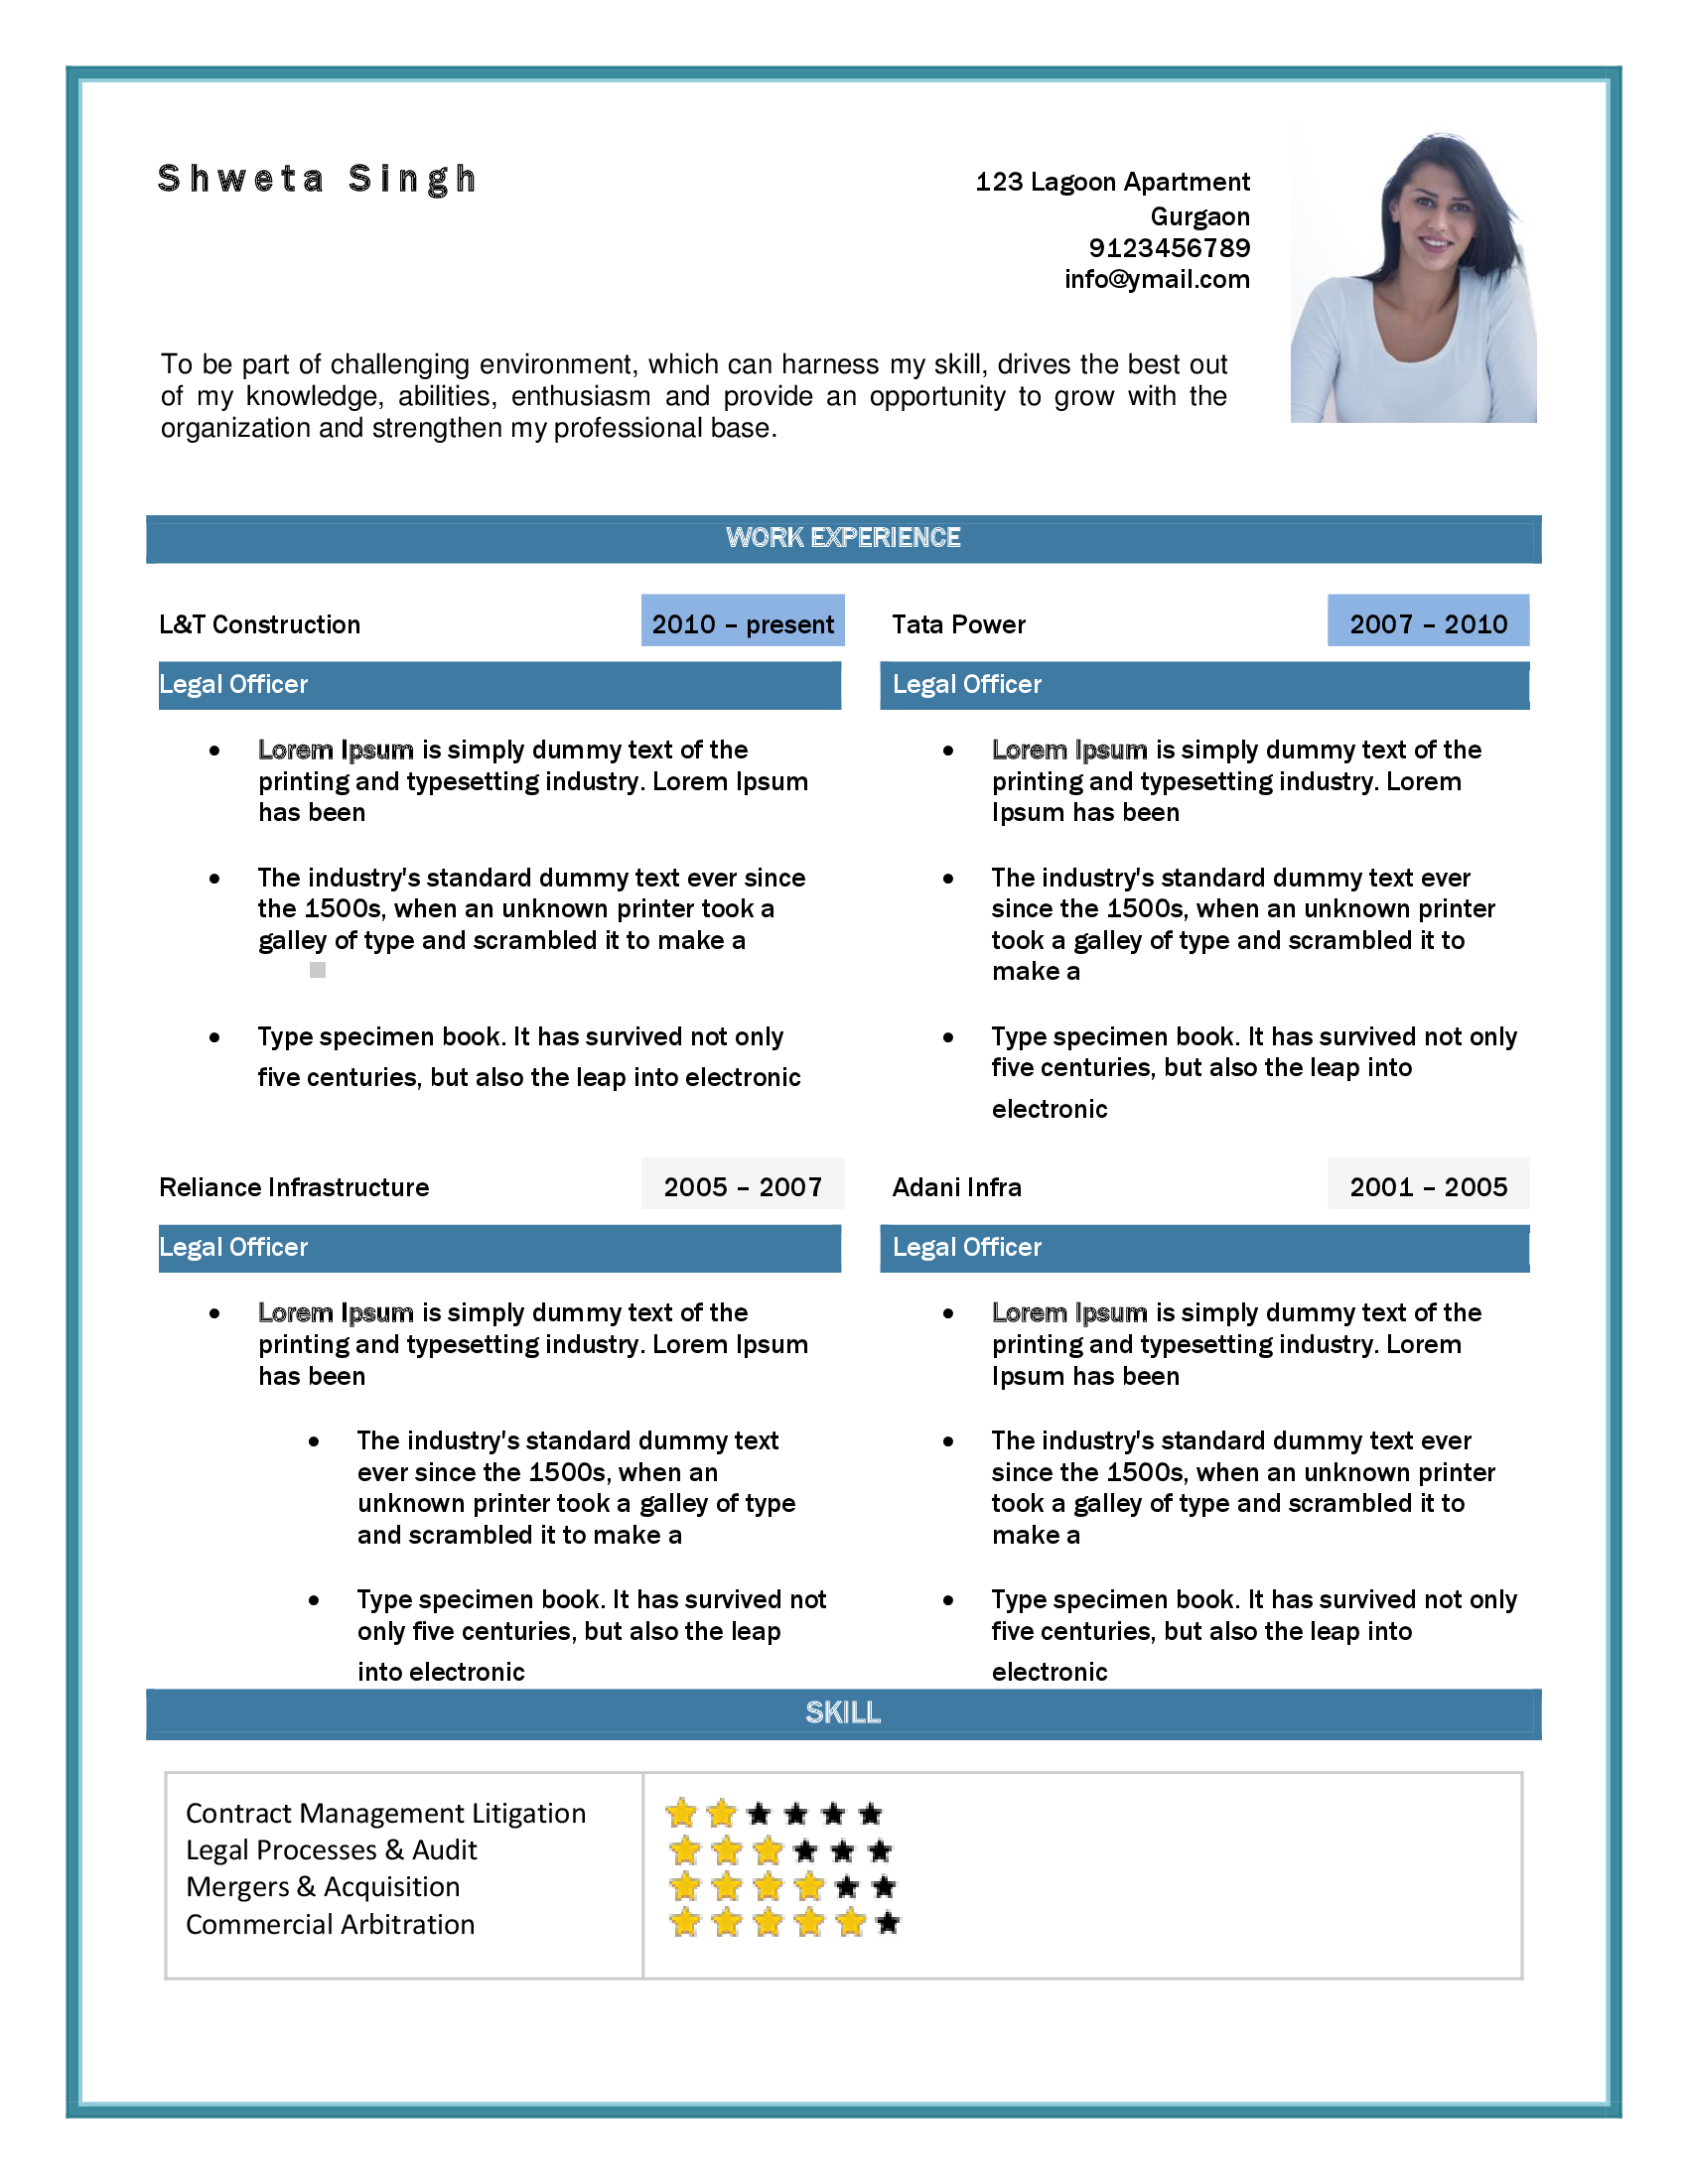 Sample Seo Resume | Content Writer Resume Pdf Proposal Writer Cover Letter Best Of